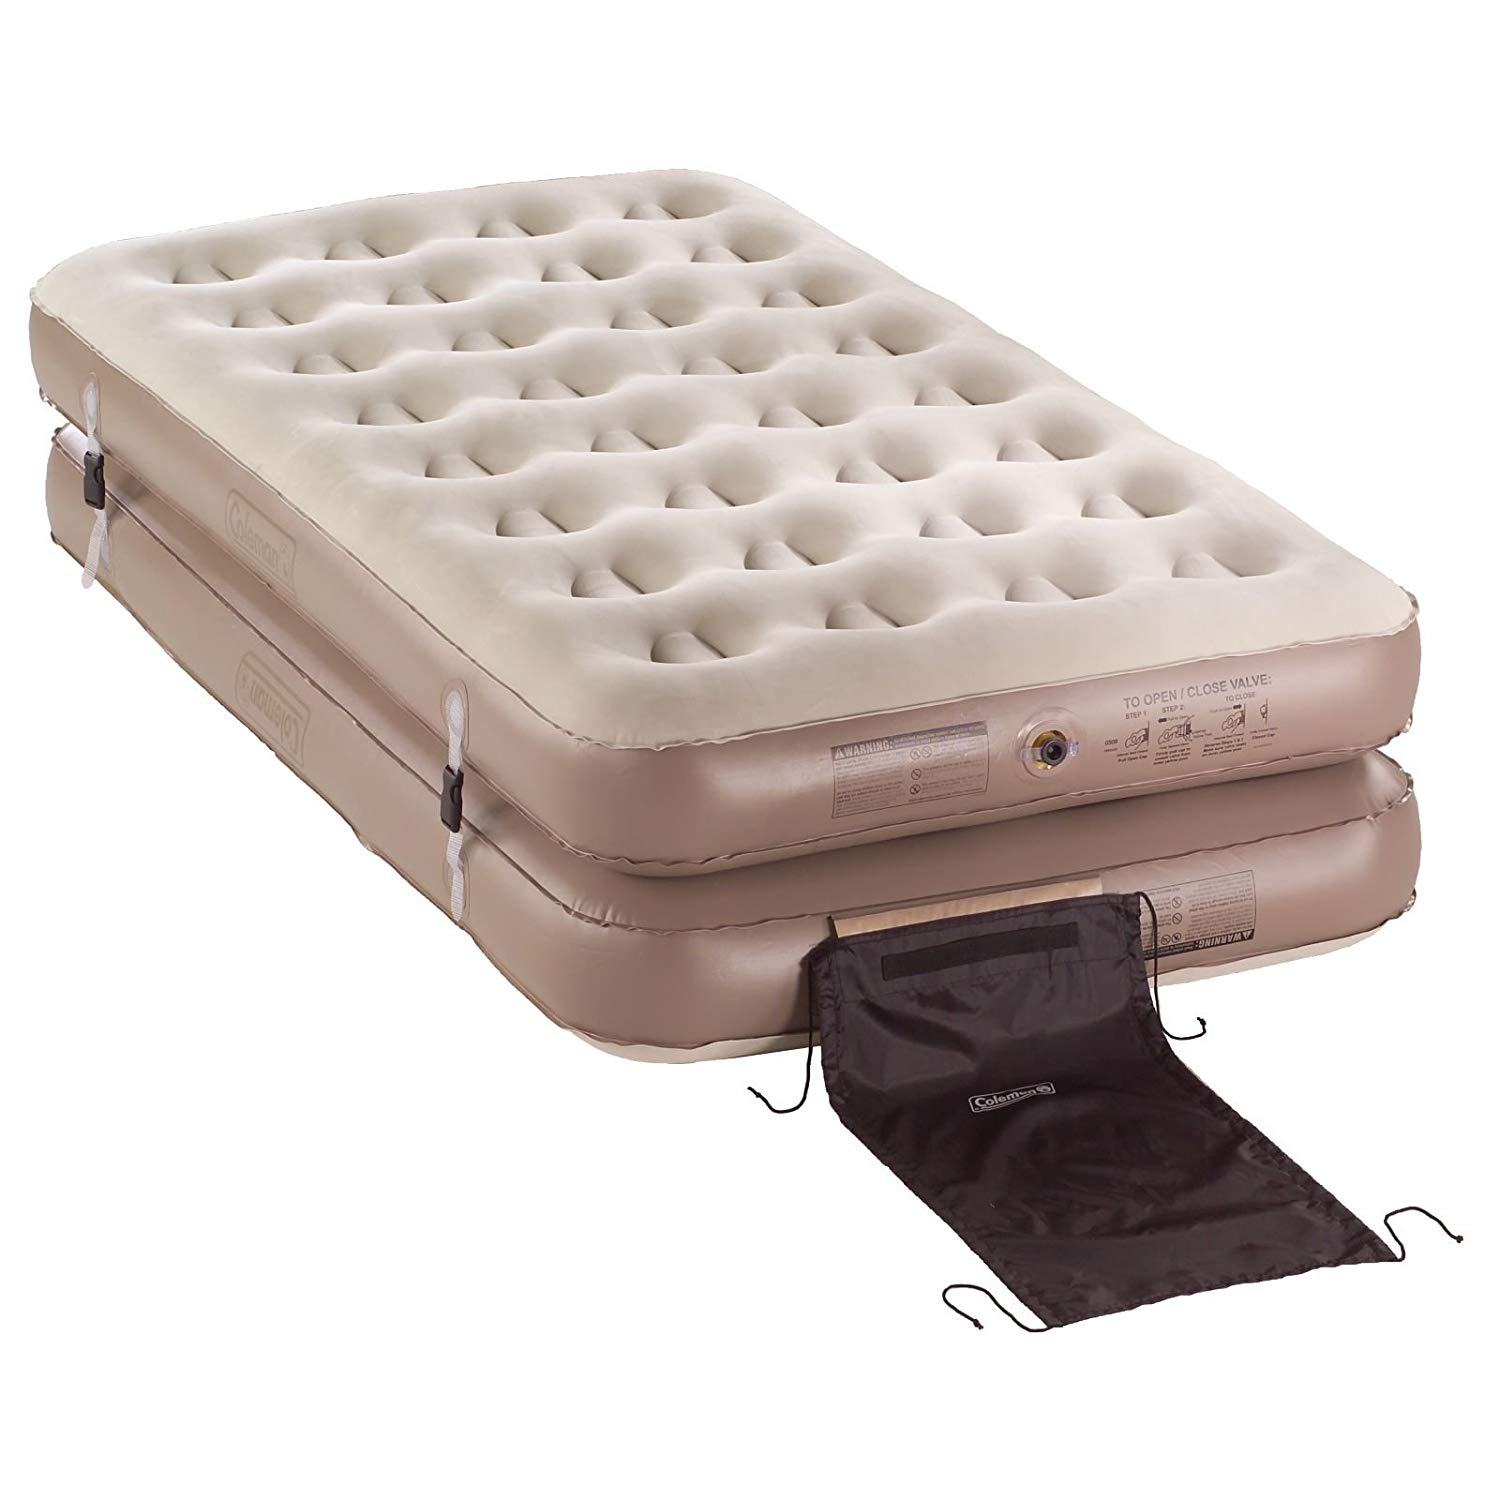 King Air Bed